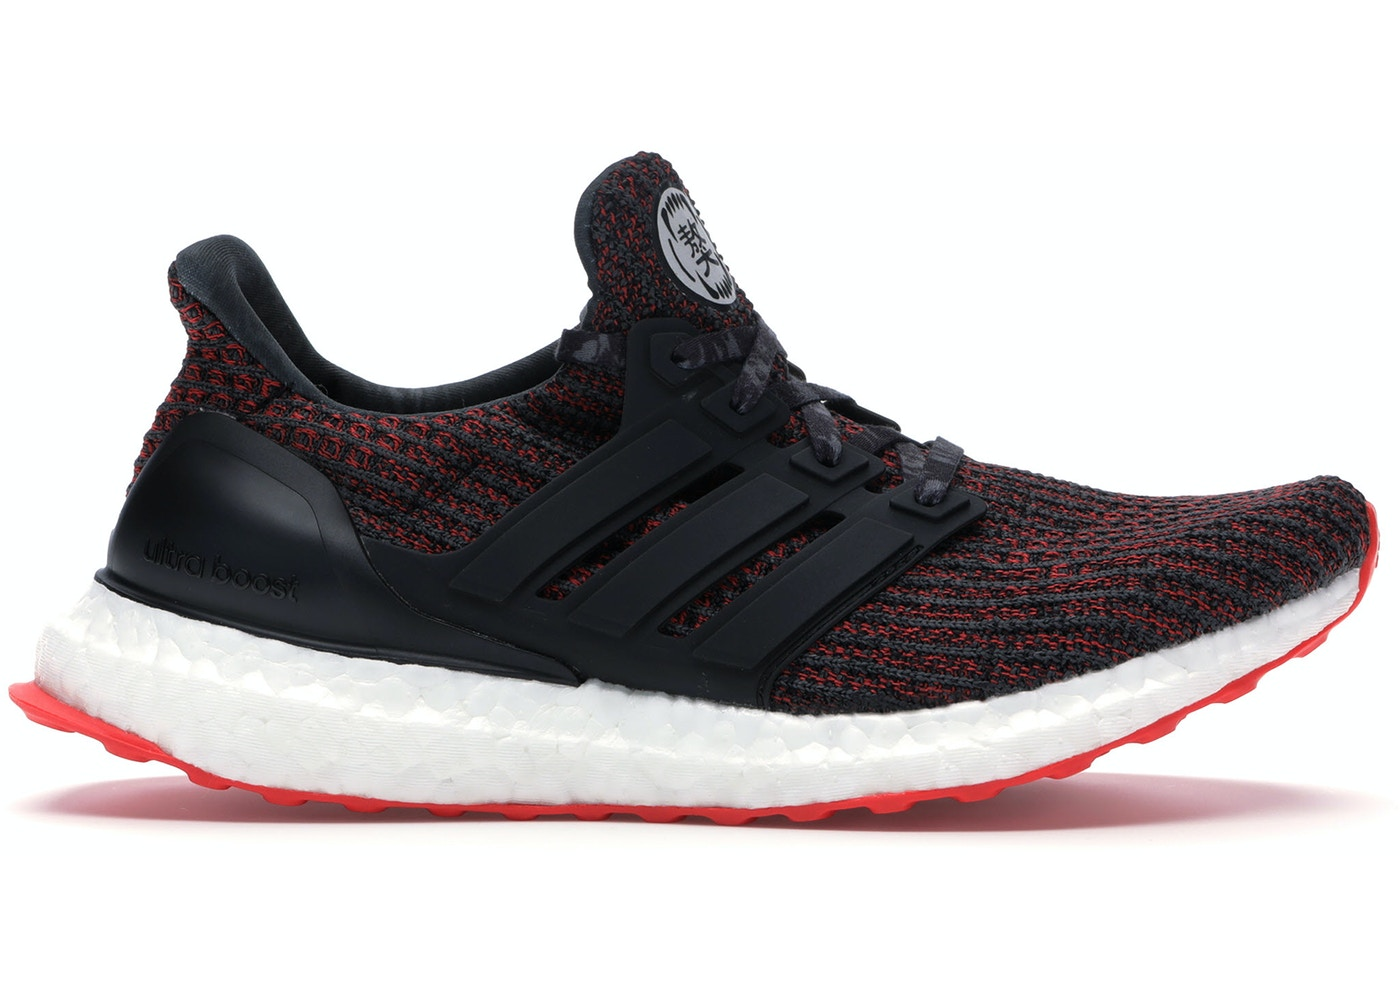 80ae11c9b adidas Ultra Boost 4.0 Chinese New Year (2018) - BB6173